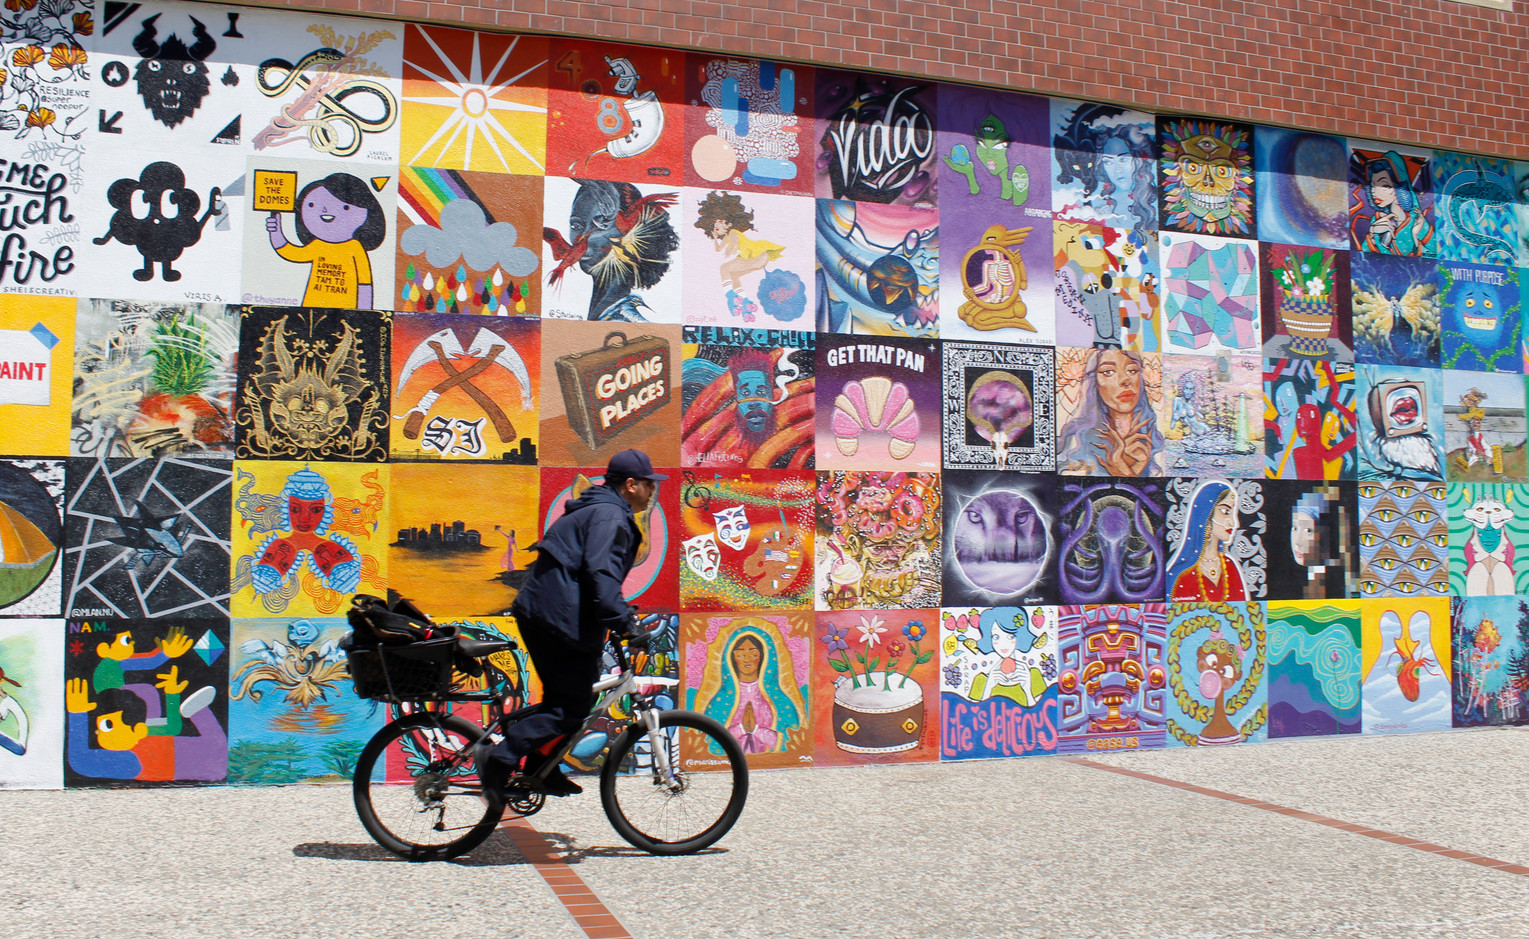 """A cyclist rides by the """"100 Block Mural Project"""" painted on a wall of the Valley Title building on First Street. (Camille Gandotra/Mosaic)"""